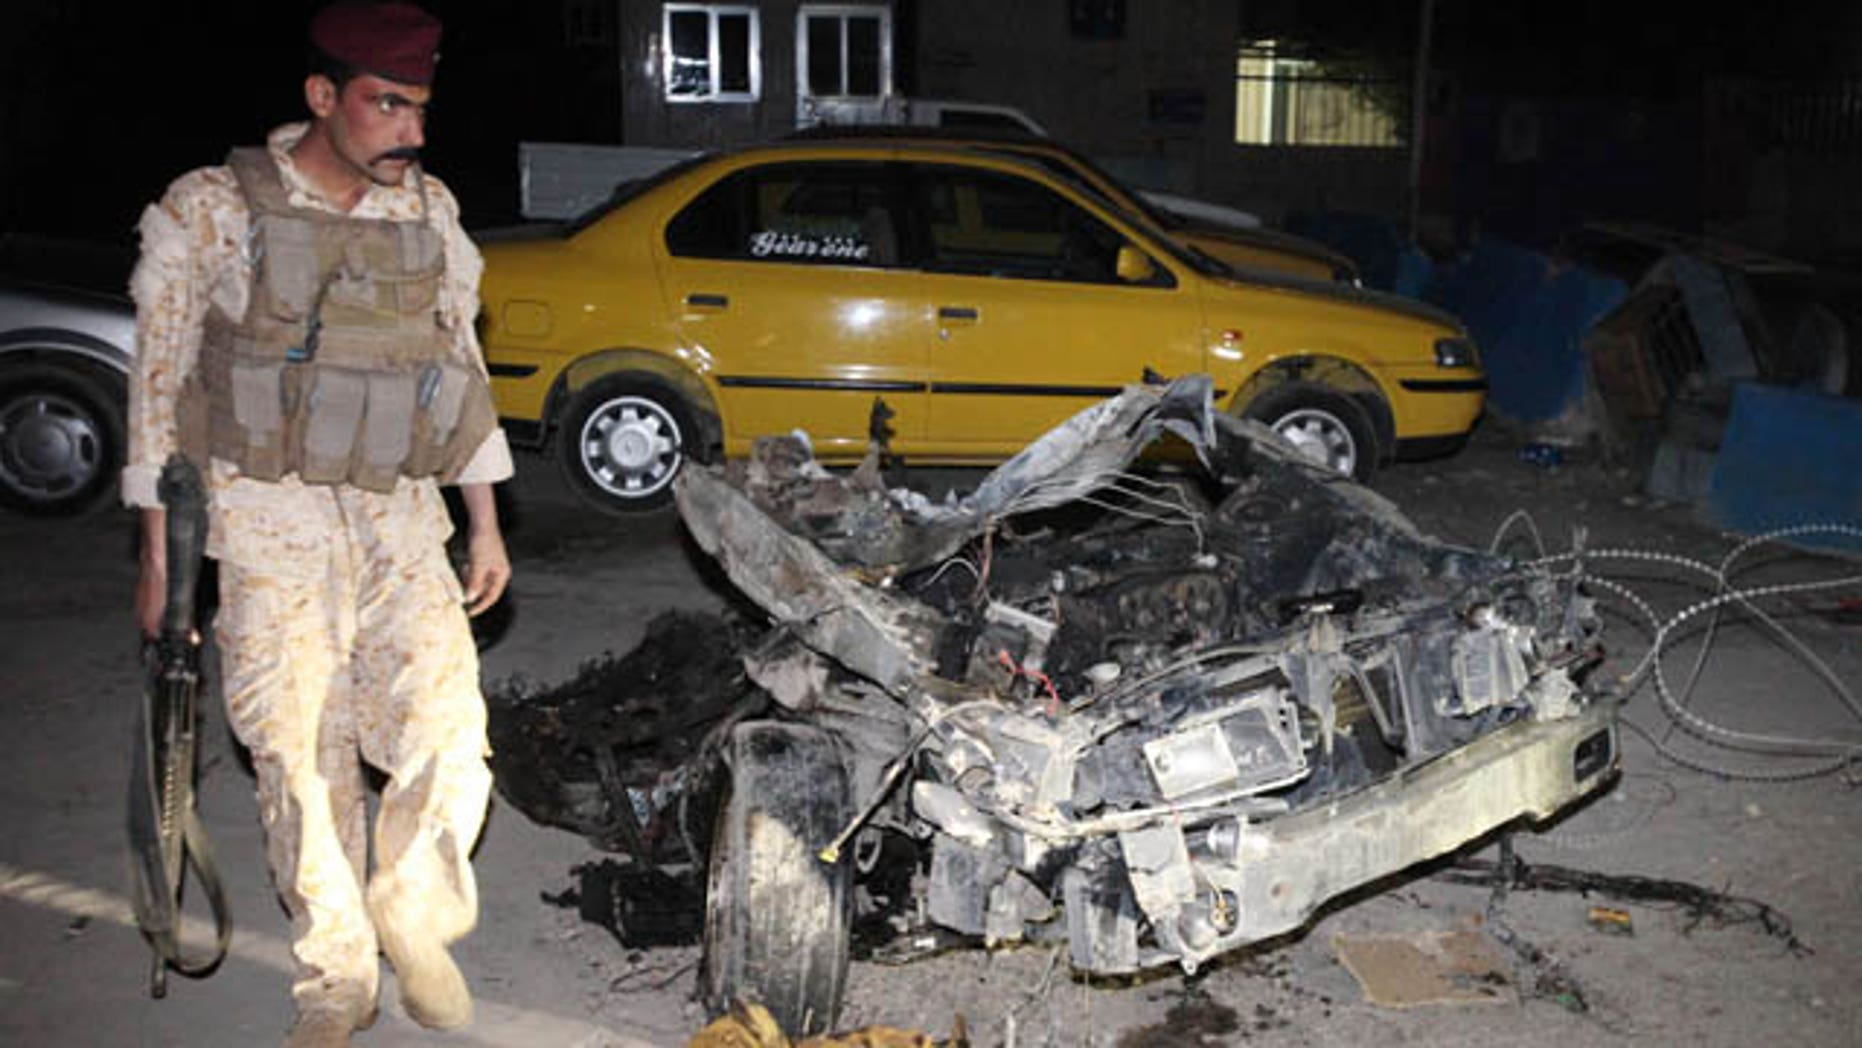 Nov. 2, 2010: An Iraqi Army soldier stands next to wreckage from a car bomb in the Shiite neighborhood of Sadr City in Baghdad, Iraq.